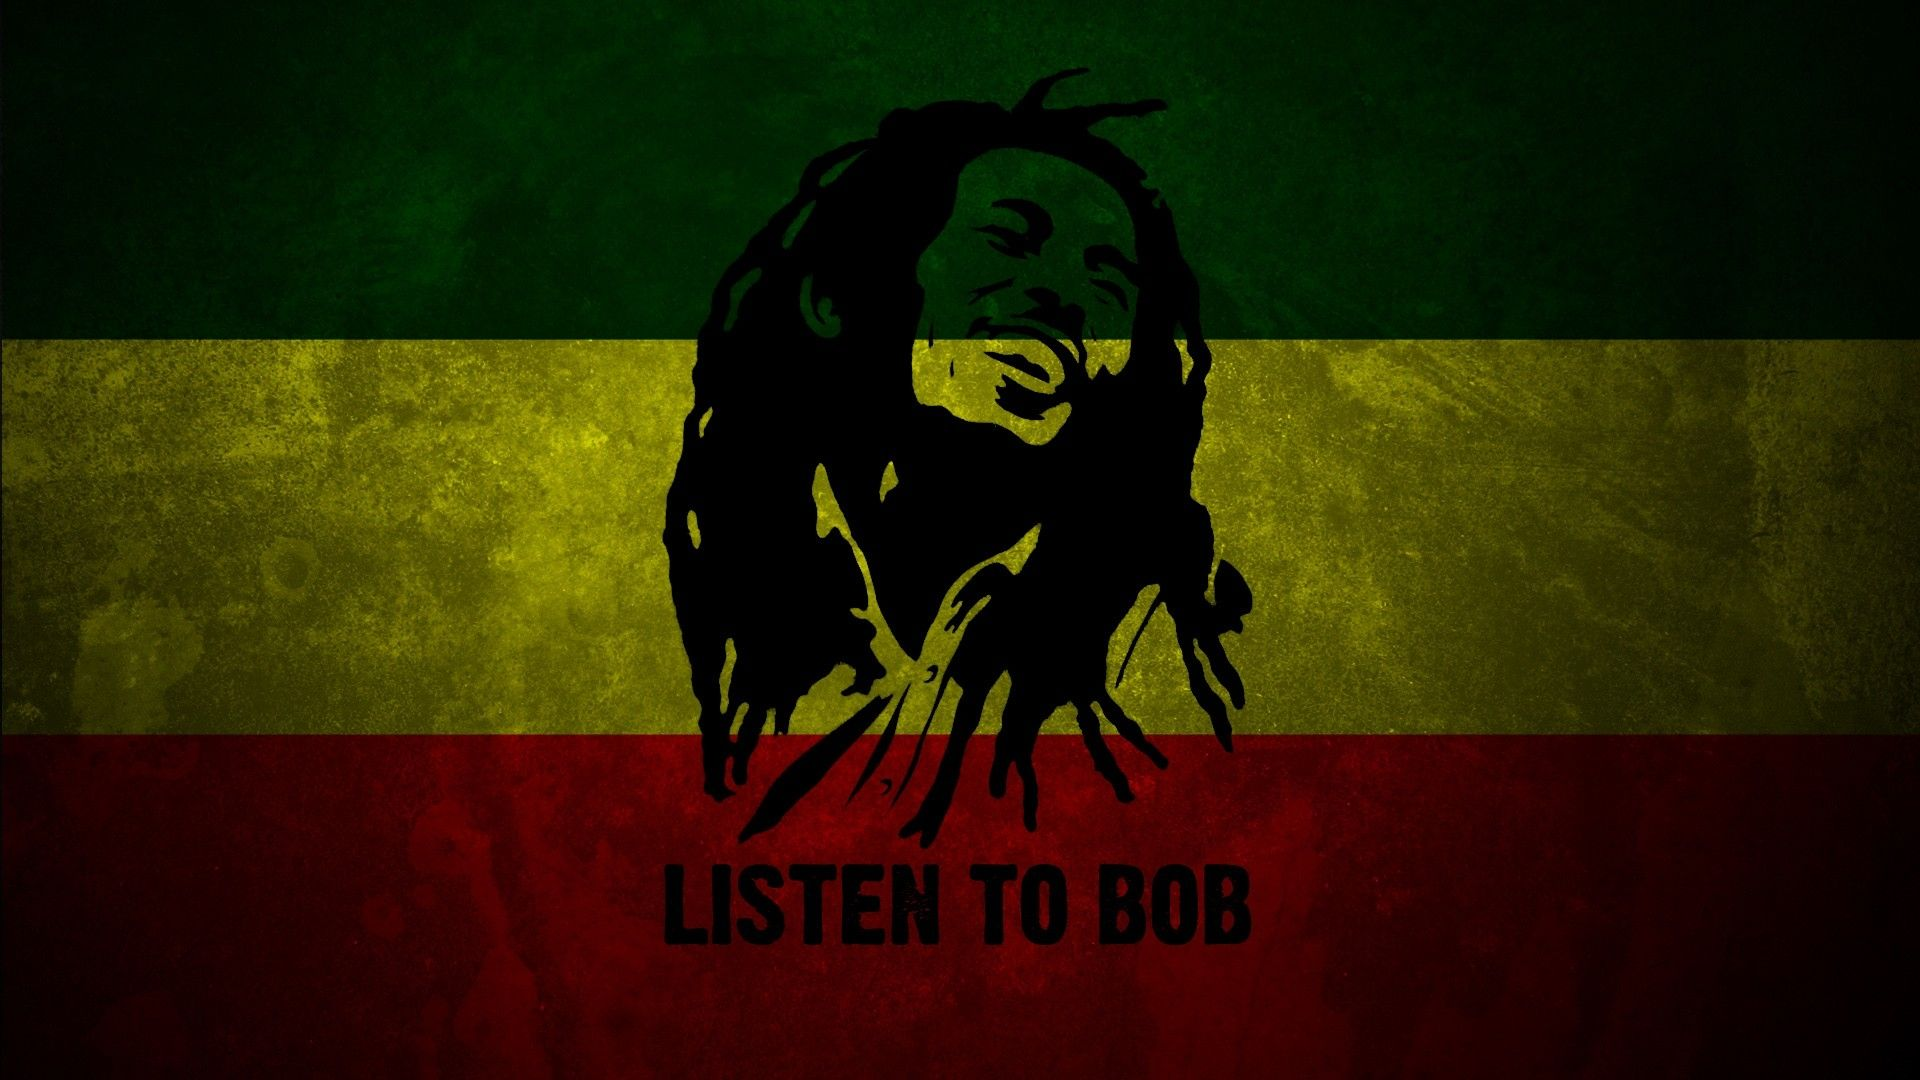 Bob Marley Wallpapers HD And Weed Wallpaper